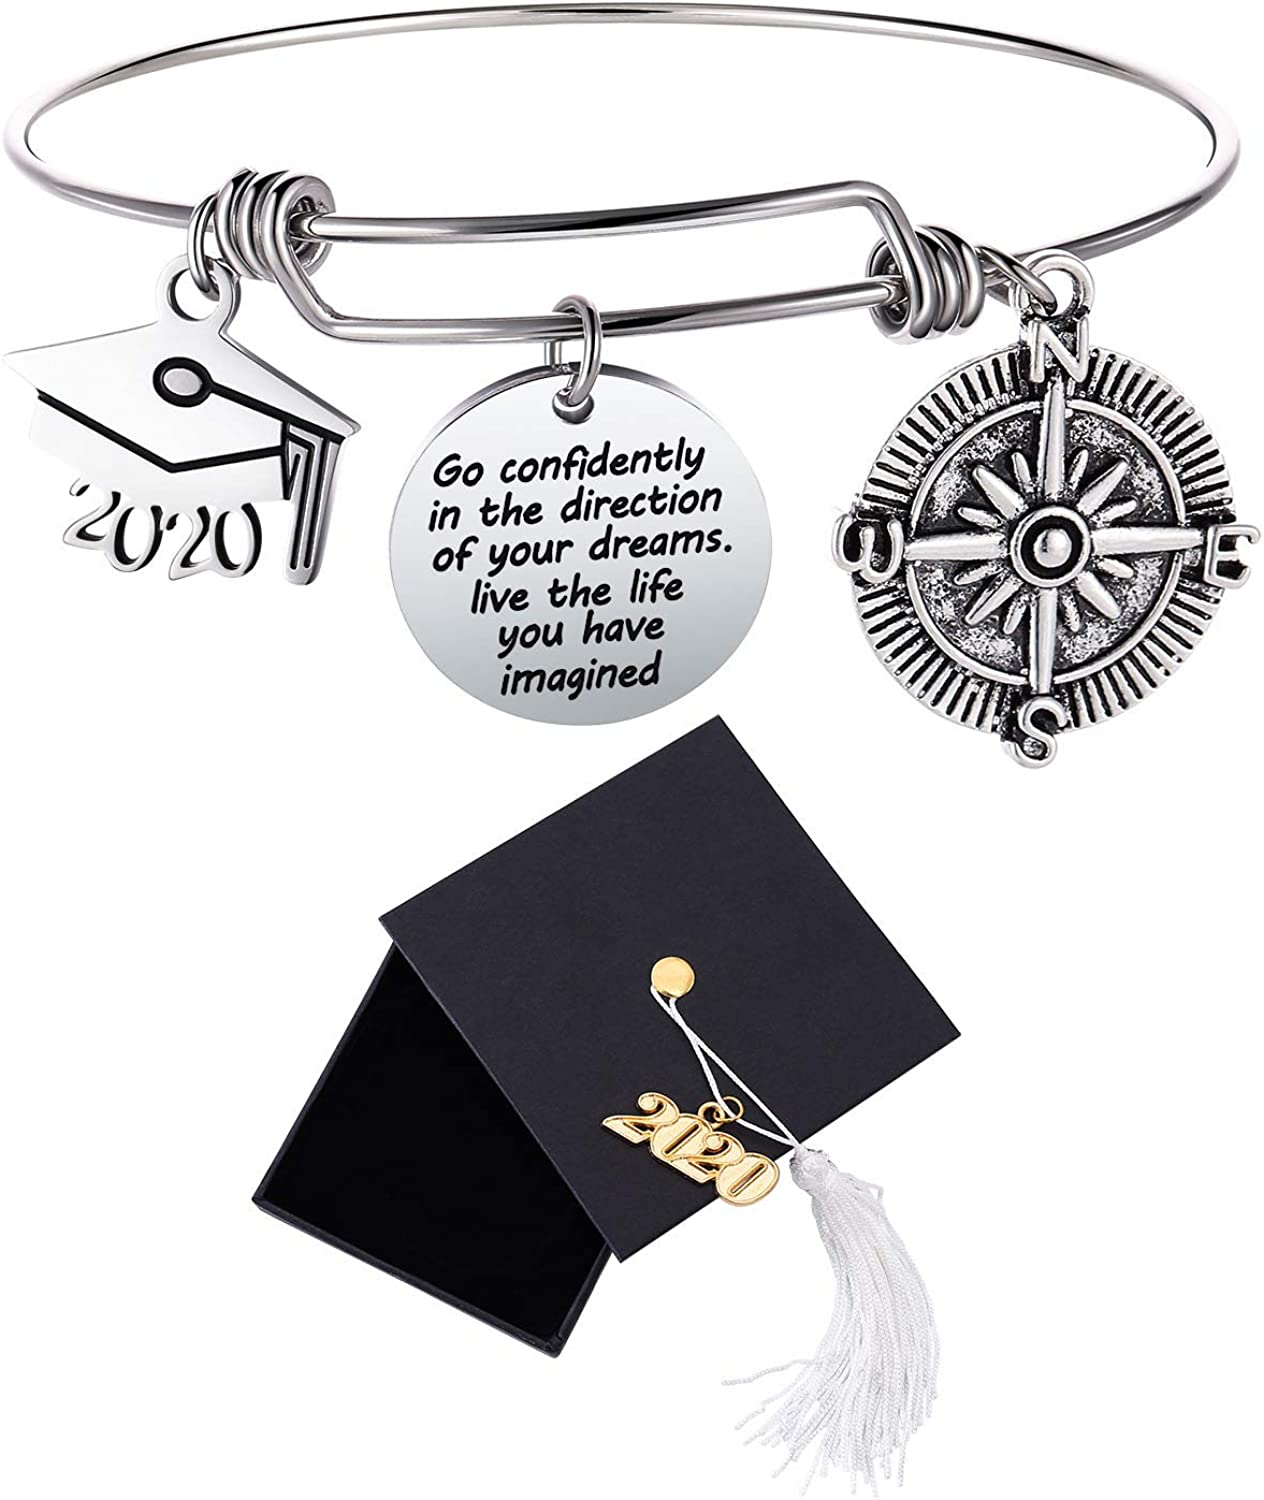 Graduation Cap Bangle Bracelet Compass Expandable Bracelet Graduation Gift Inspirational Jewelry for Women Girl Go Confidently In The Direction Of Your Dreams Live The Life You Have Imagined